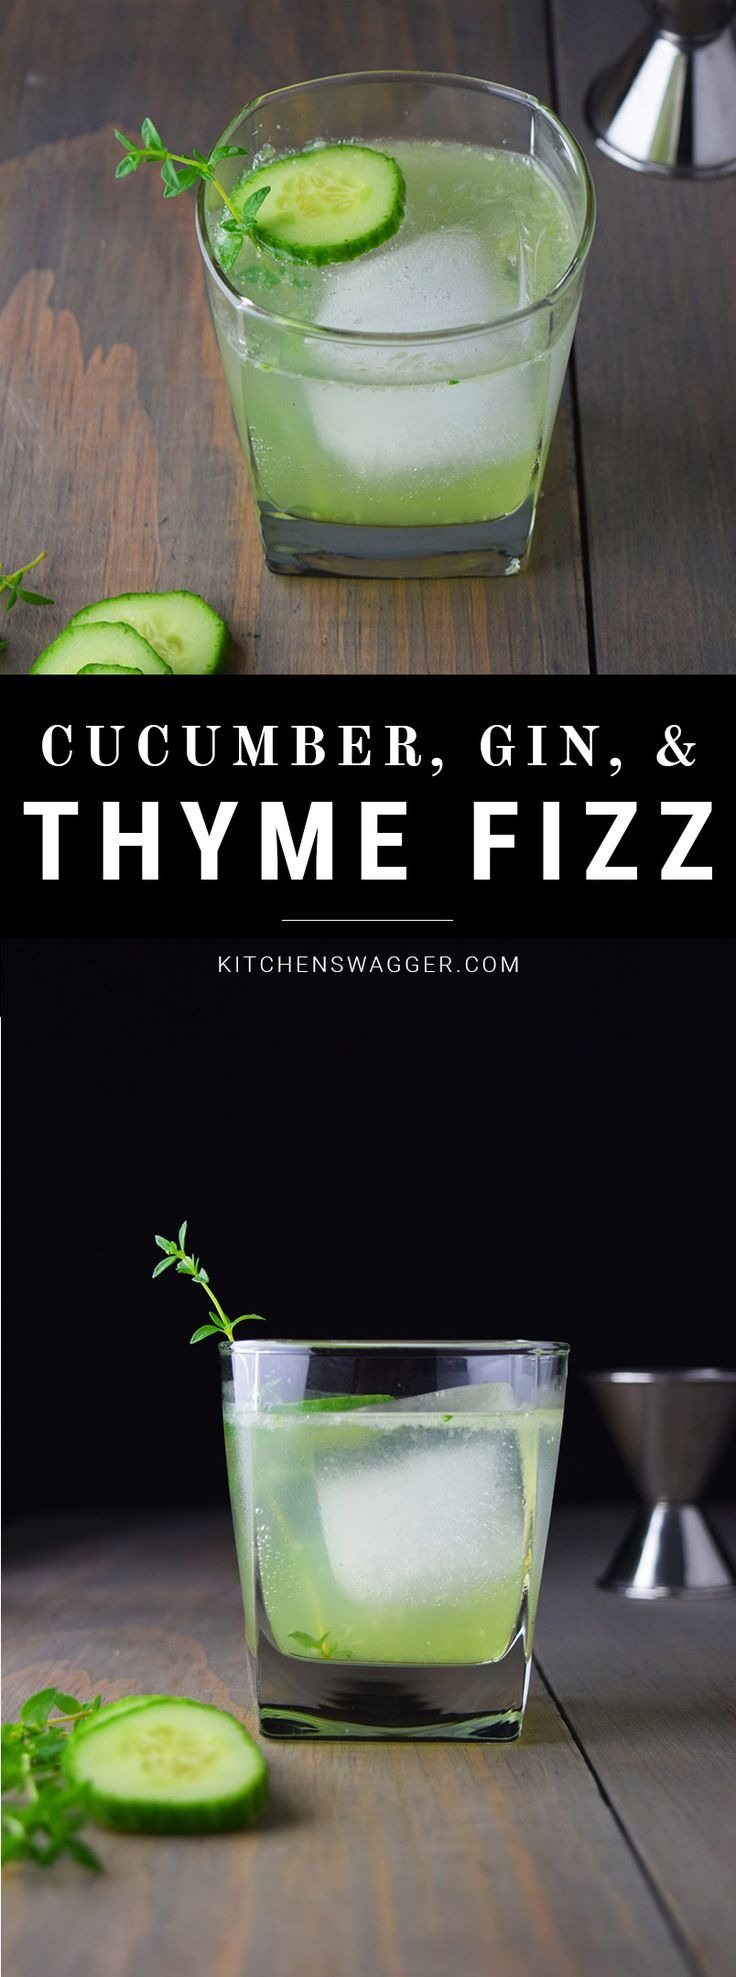 Cucumber, Gin, and Thyme Fizz | Recipe | Home, Cocktails and Sweet